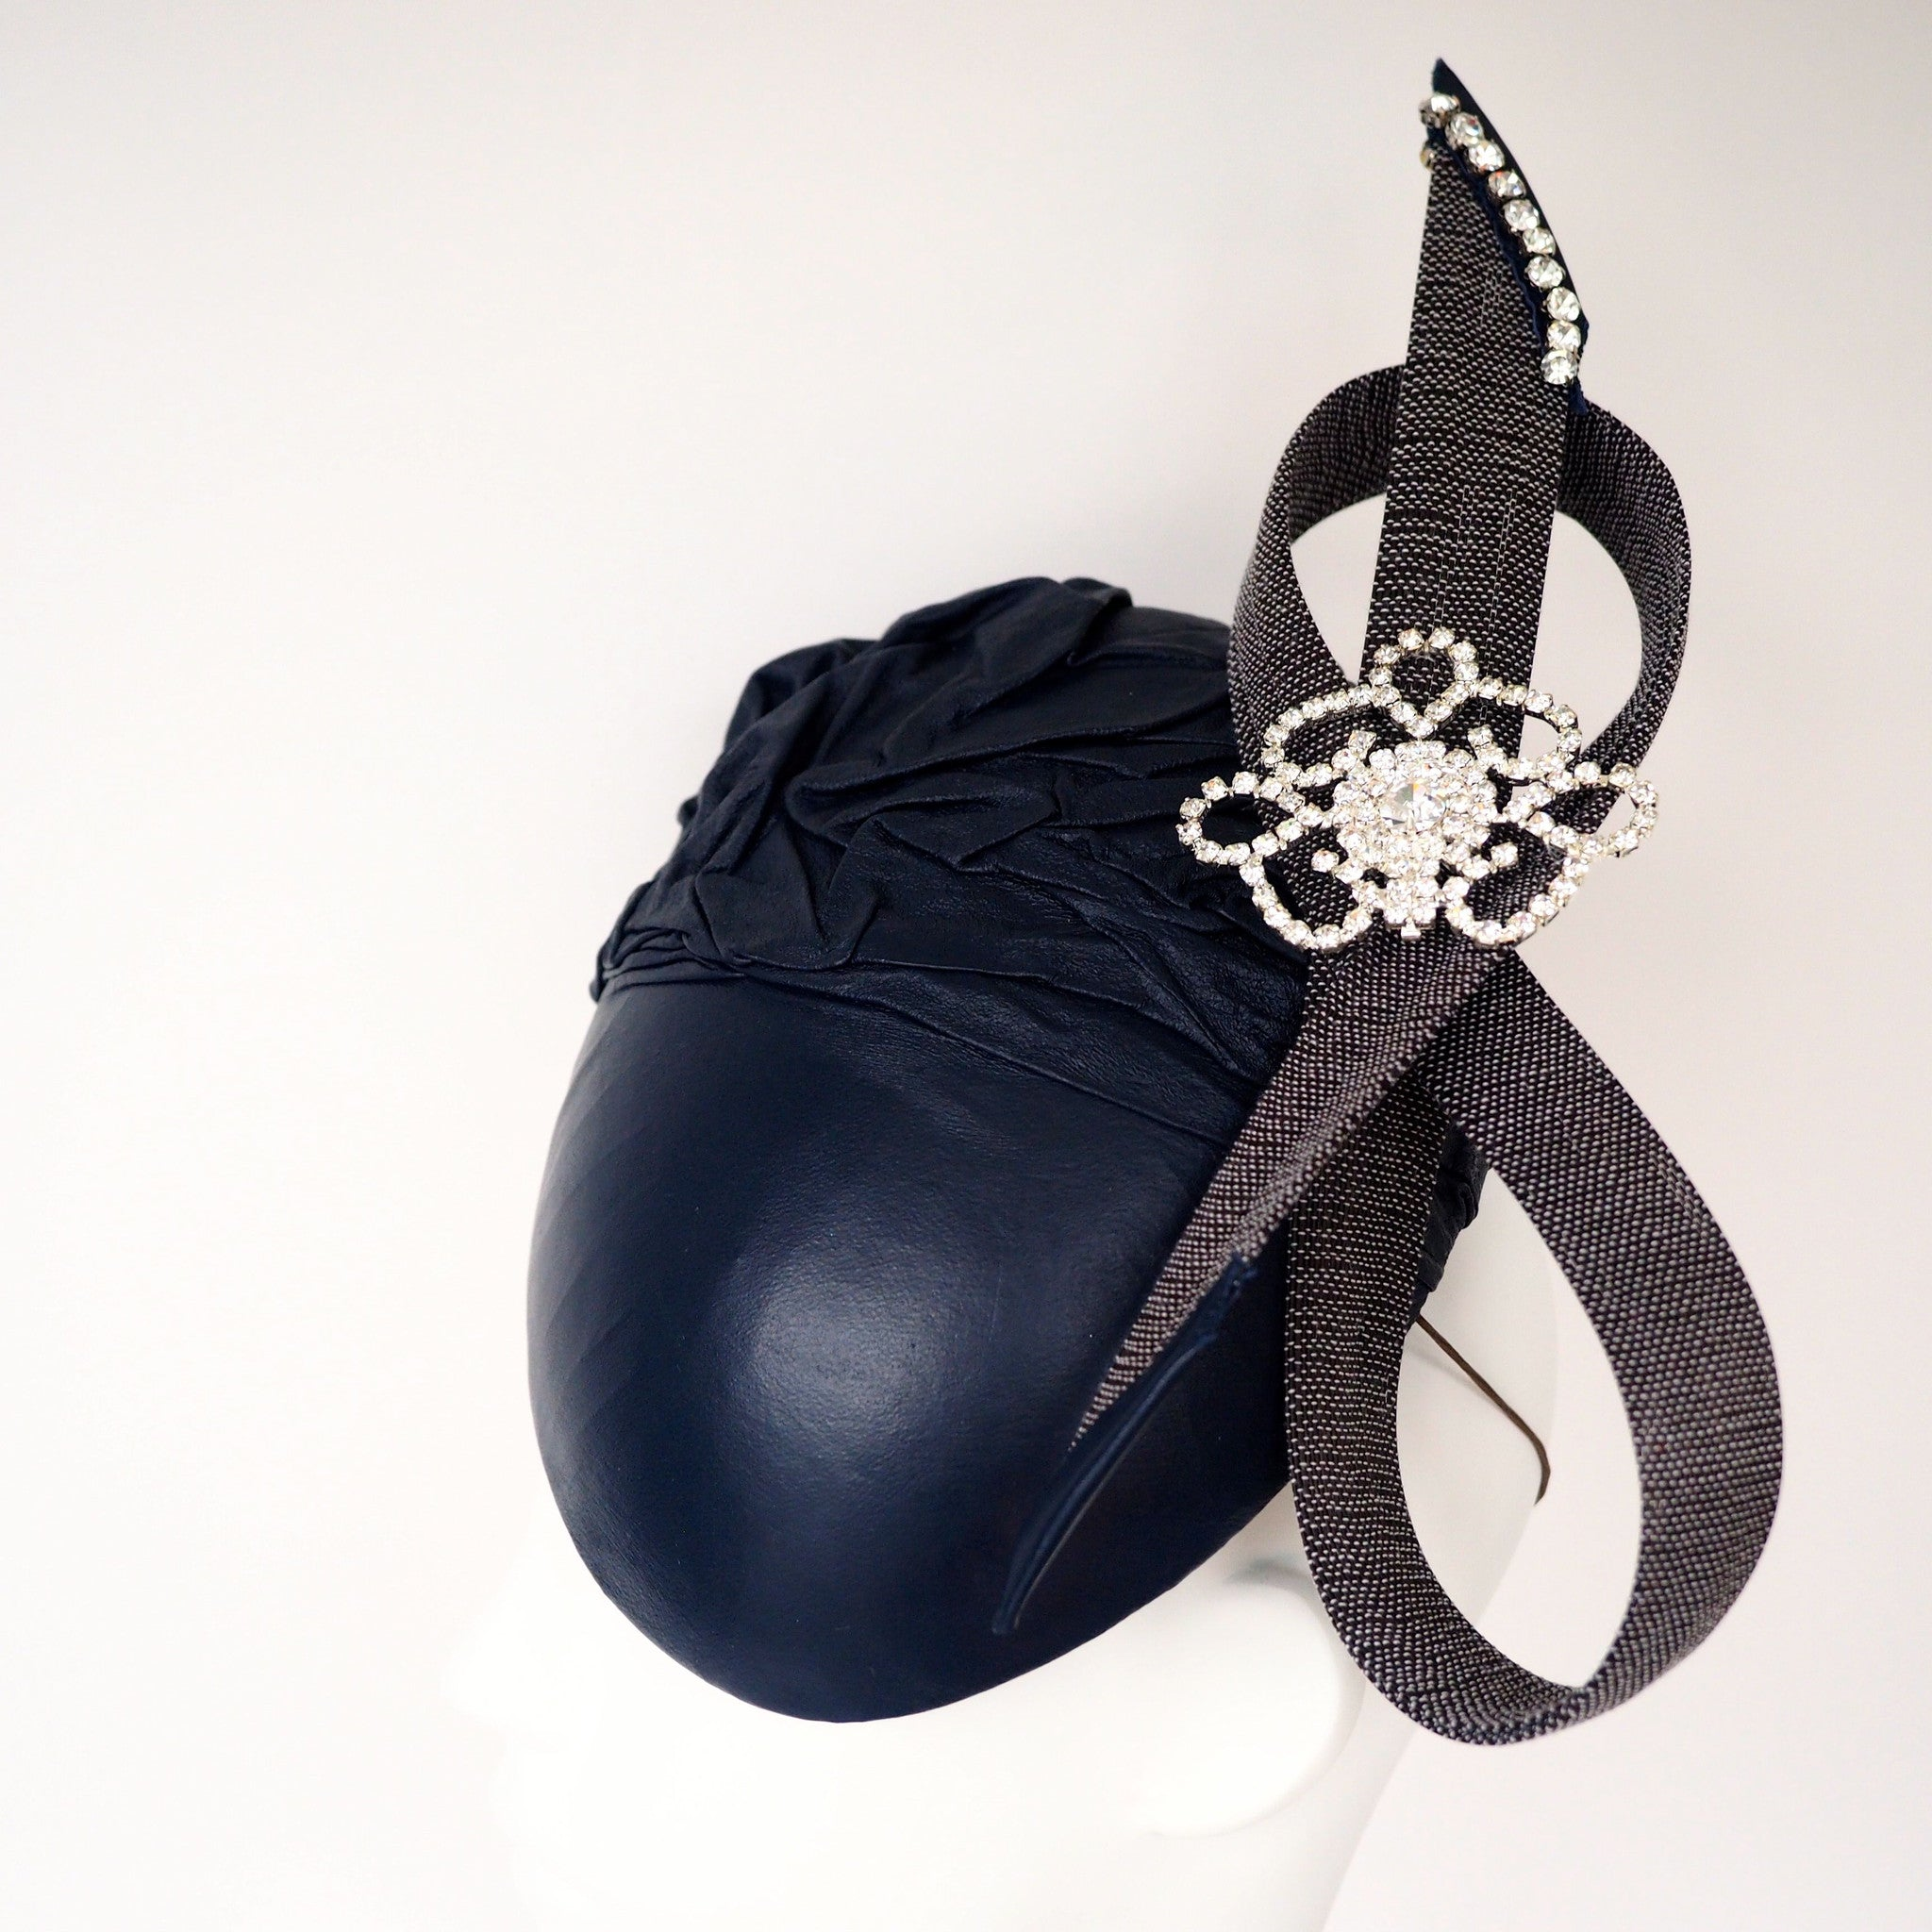 MODECO - Made to order Unique Leather hat - available in other colours - NOELEEN MILLINERY HONG KONG